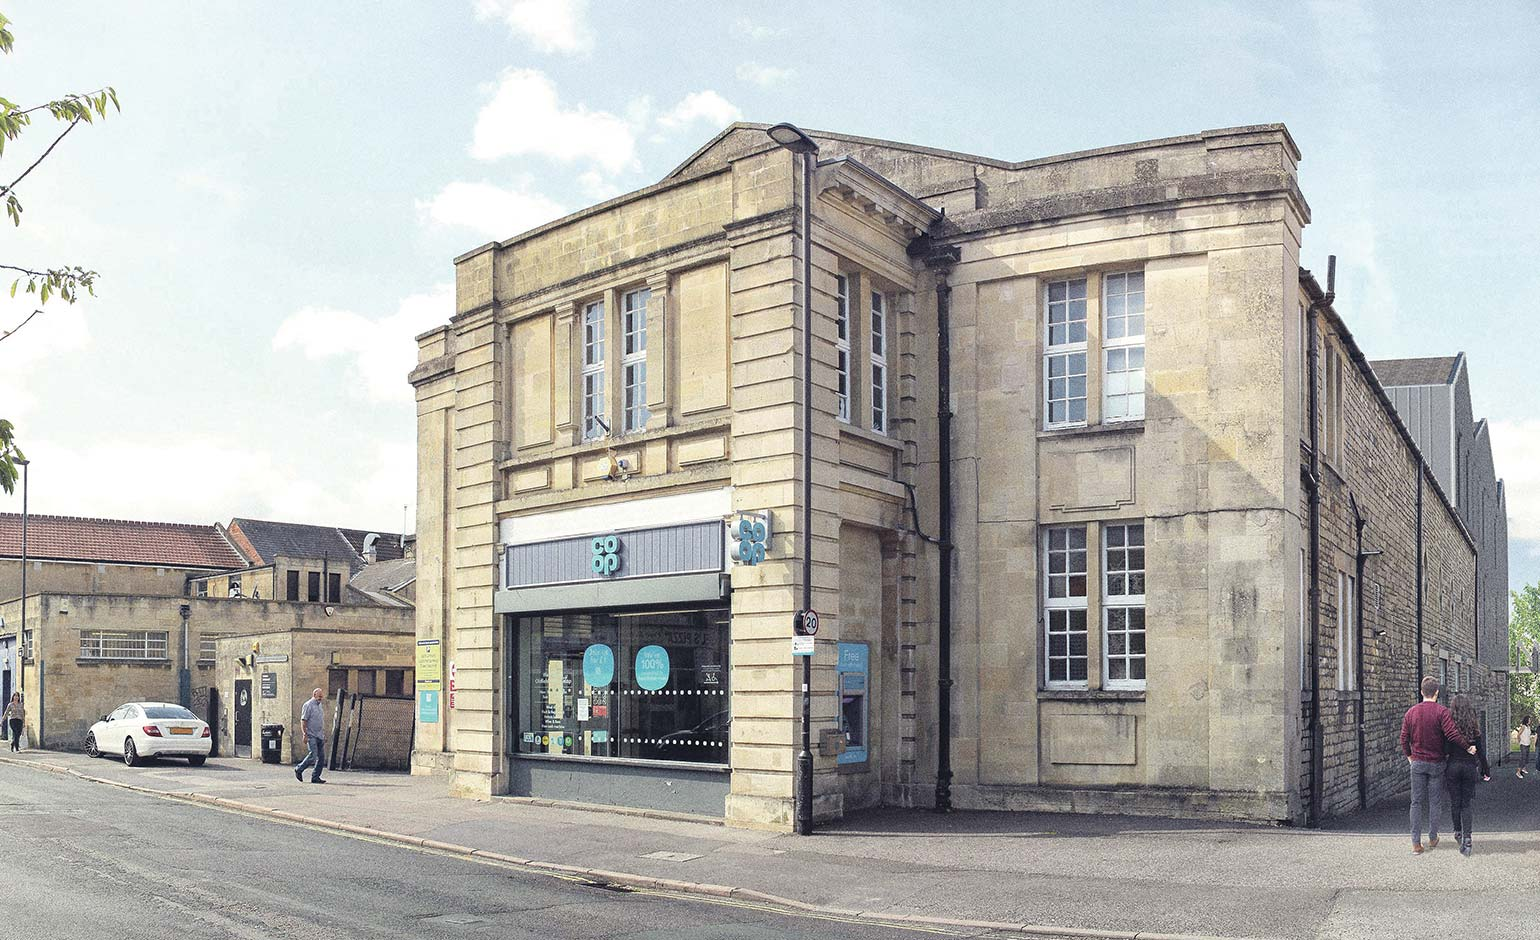 Plans for student housing and upgraded Co-op store at former cinema unveiled